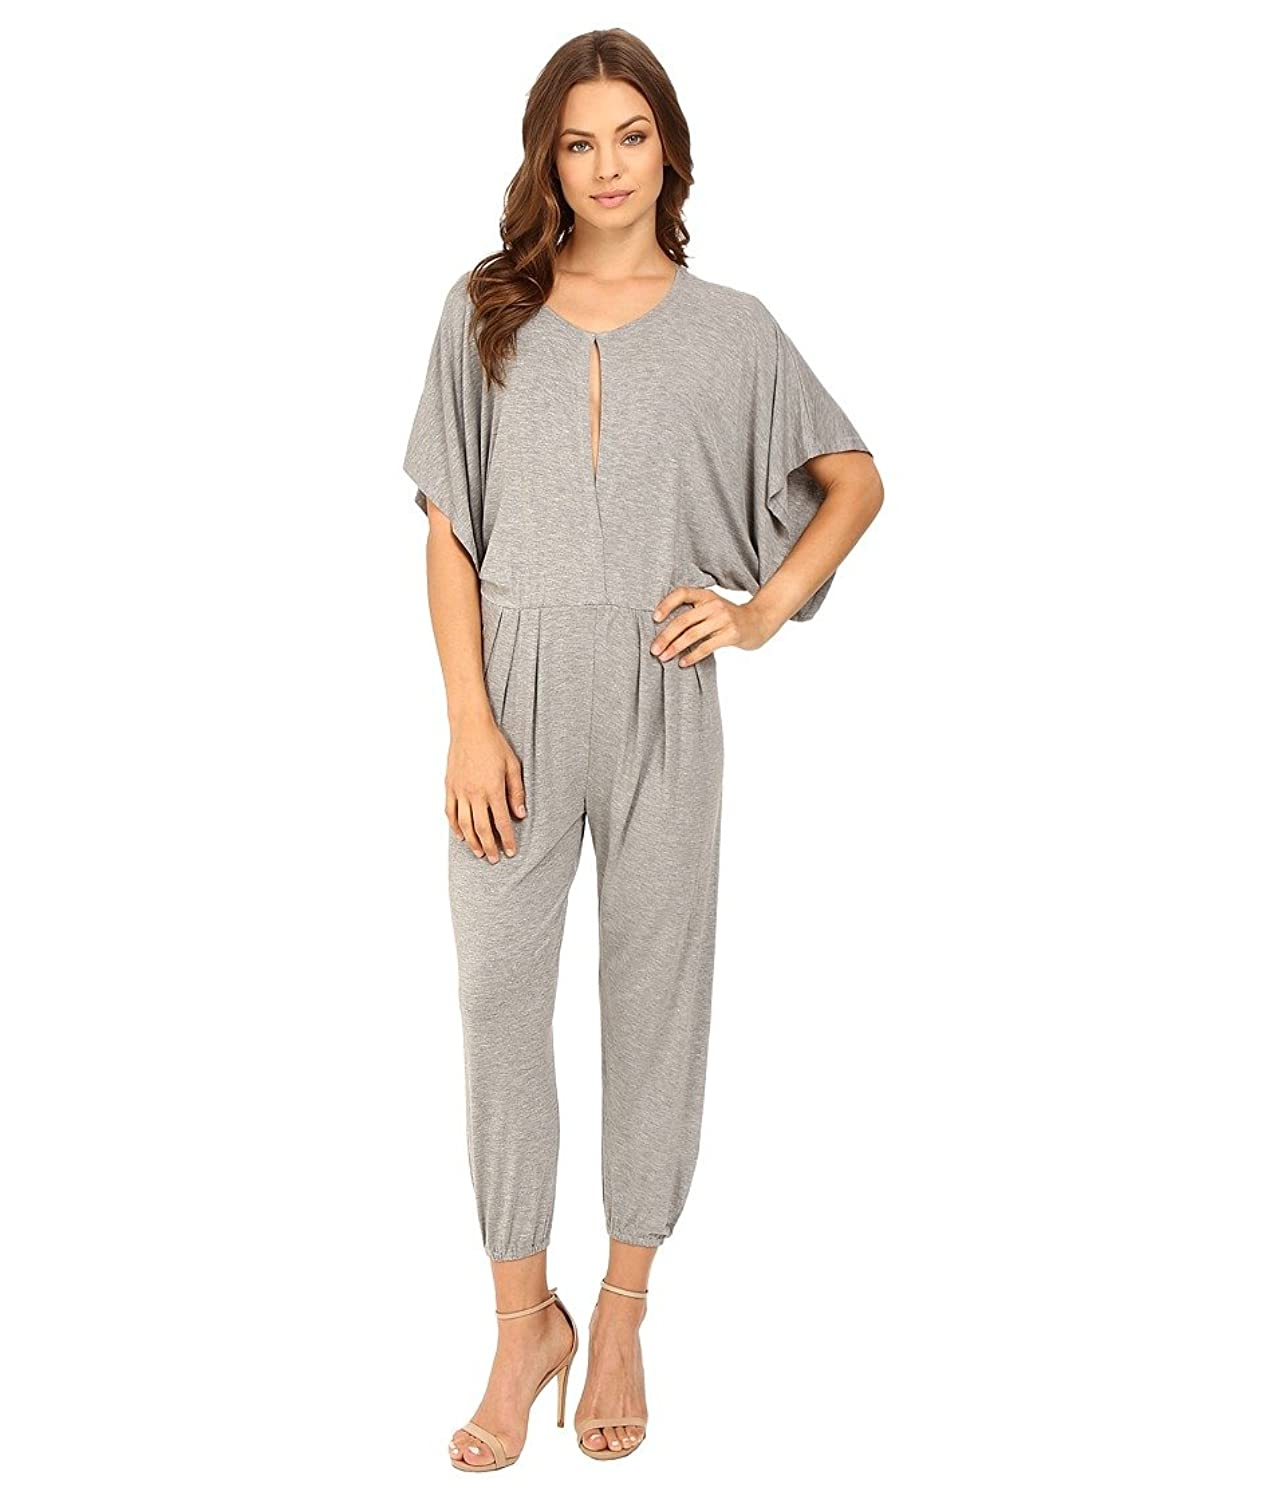 c6498fbeb Mobisi Womens Short Ruffle Sleeve Cotton Pajamas Button Front Two ...